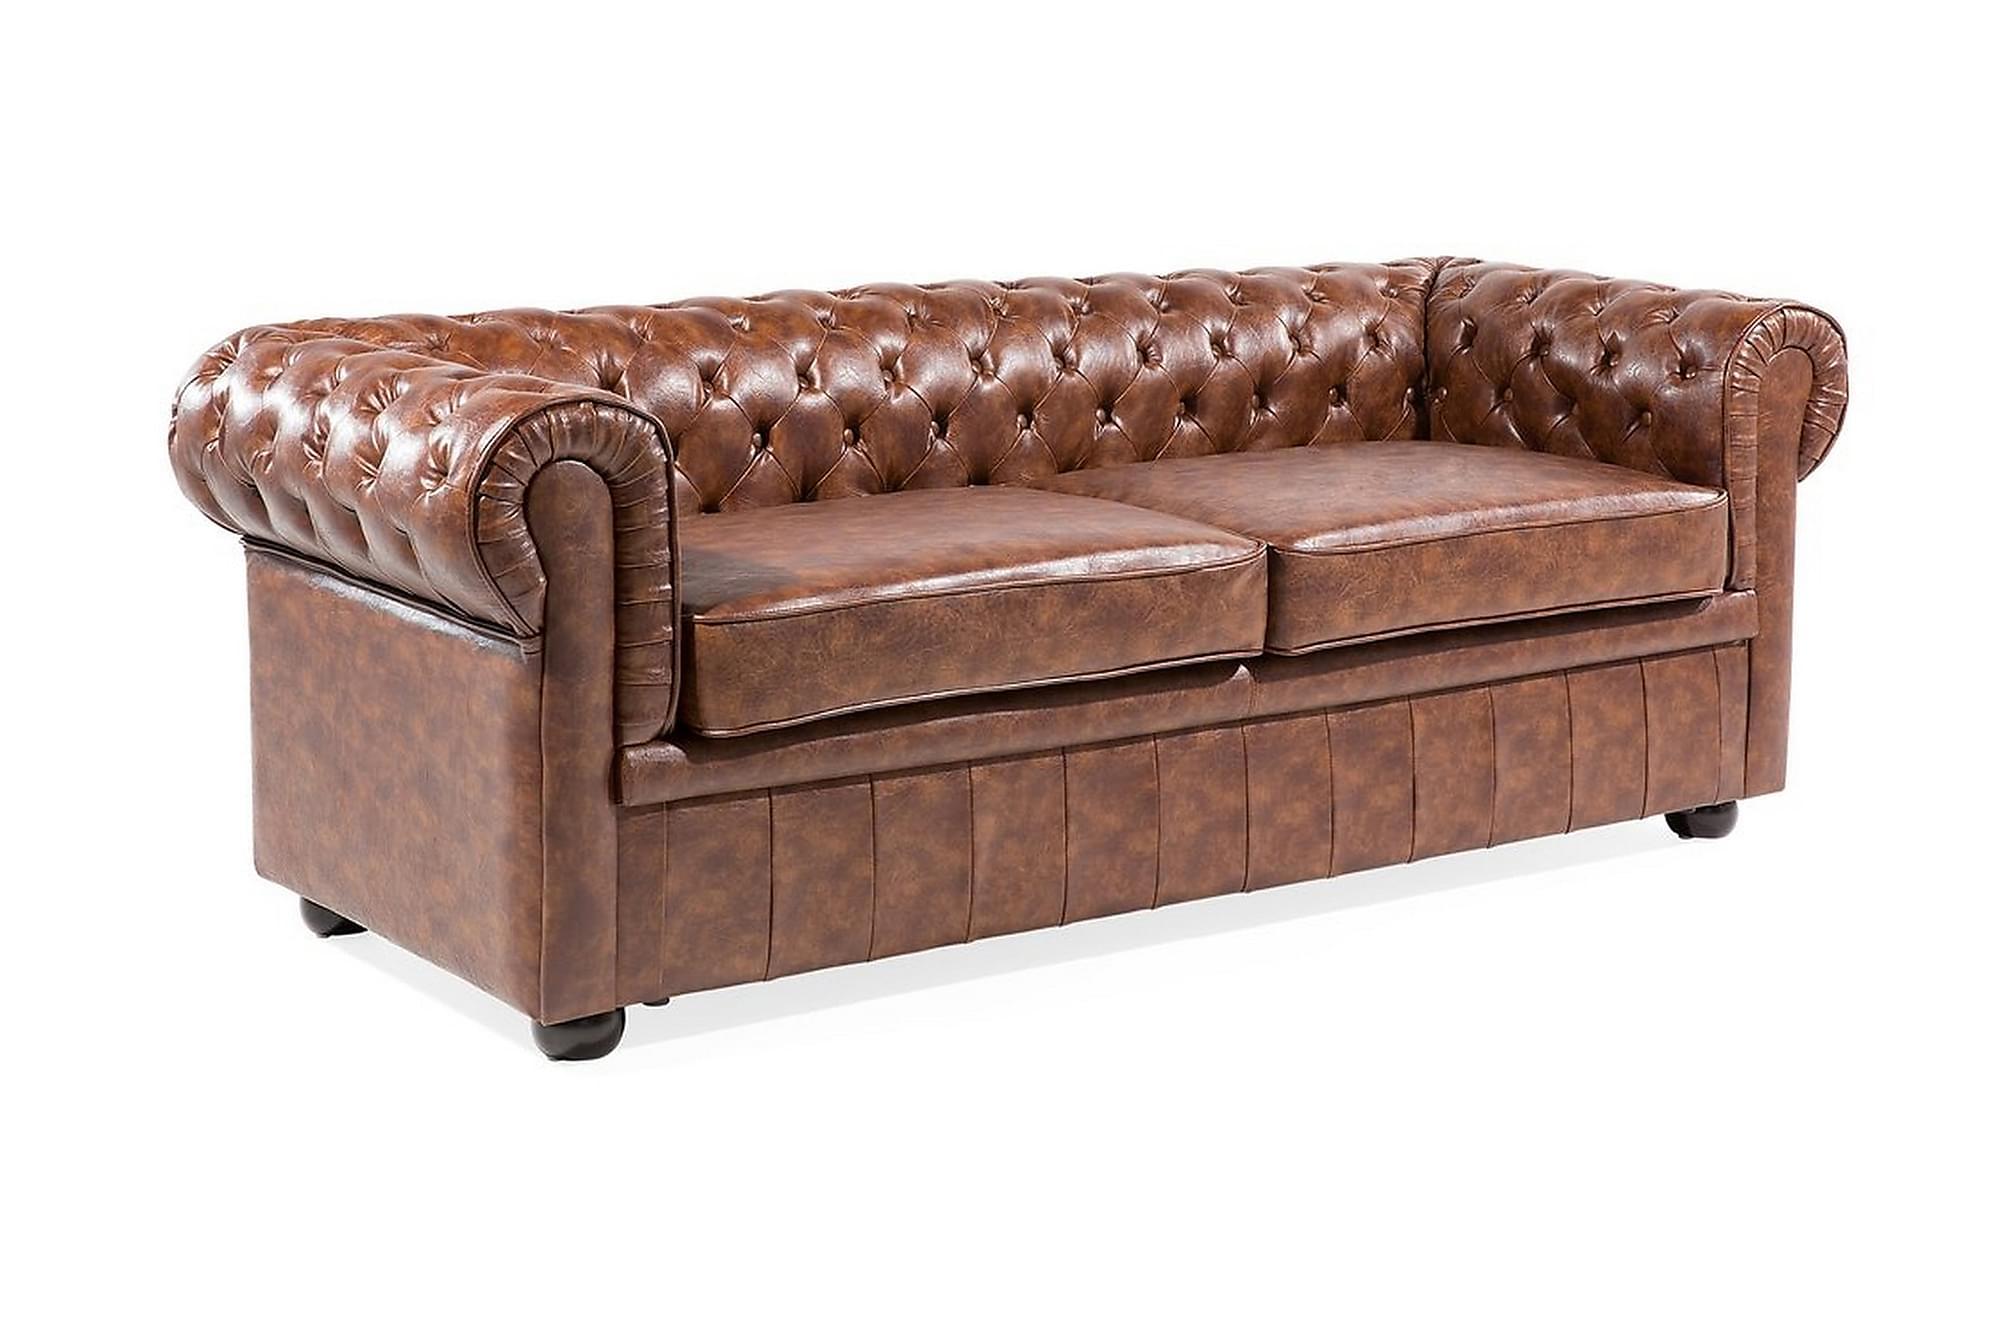 CHESTERFIELD Soffa 2-4 sits